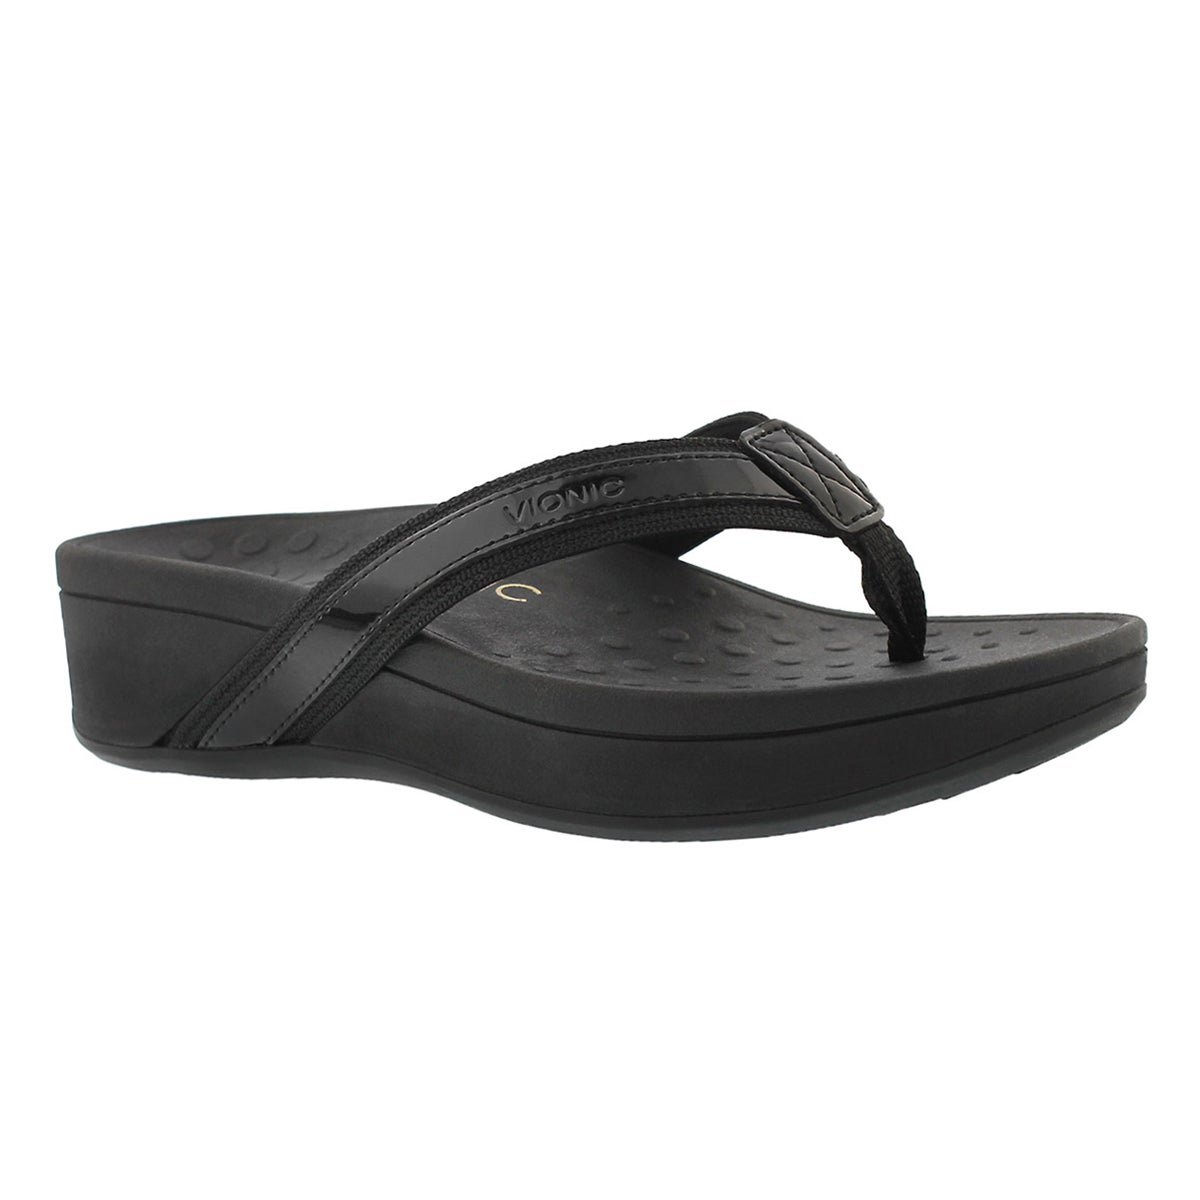 Women's HIGH TIDE black arch support wedge sandals